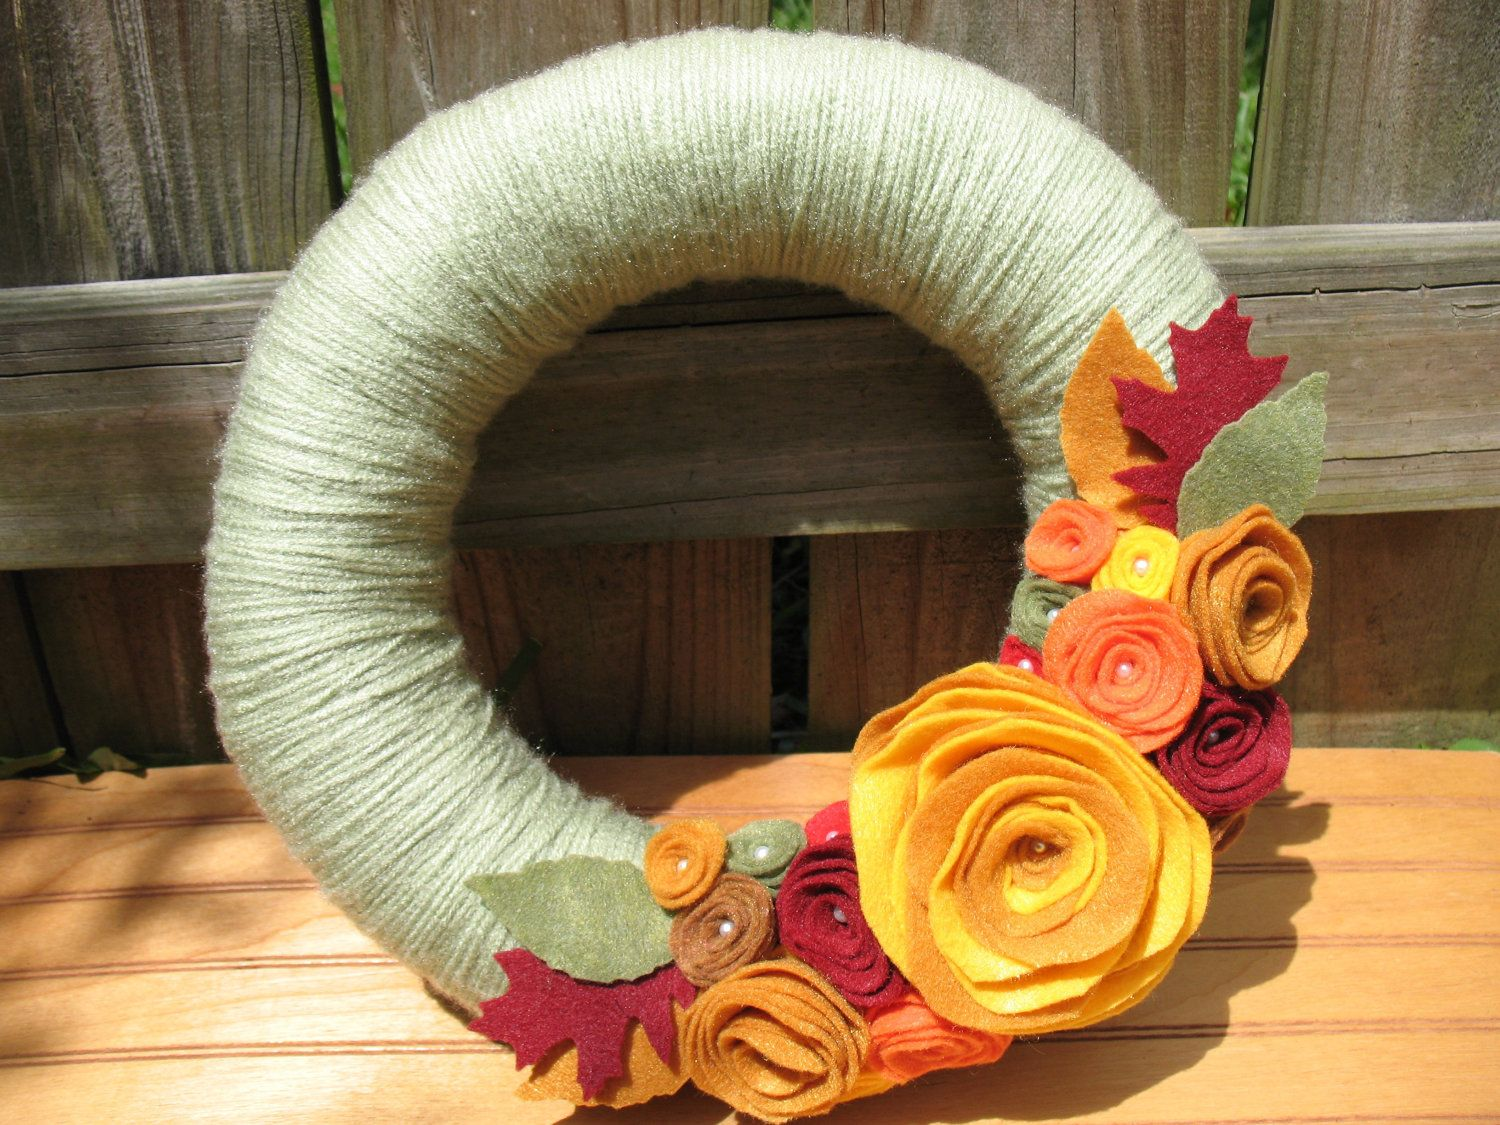 Fall Garden Wreath- Fall Wreath--Fall Decor-Autumn Decor-Thanksgiving Wreath-- Green Yarn and Felt Flower Pearl Wreath.